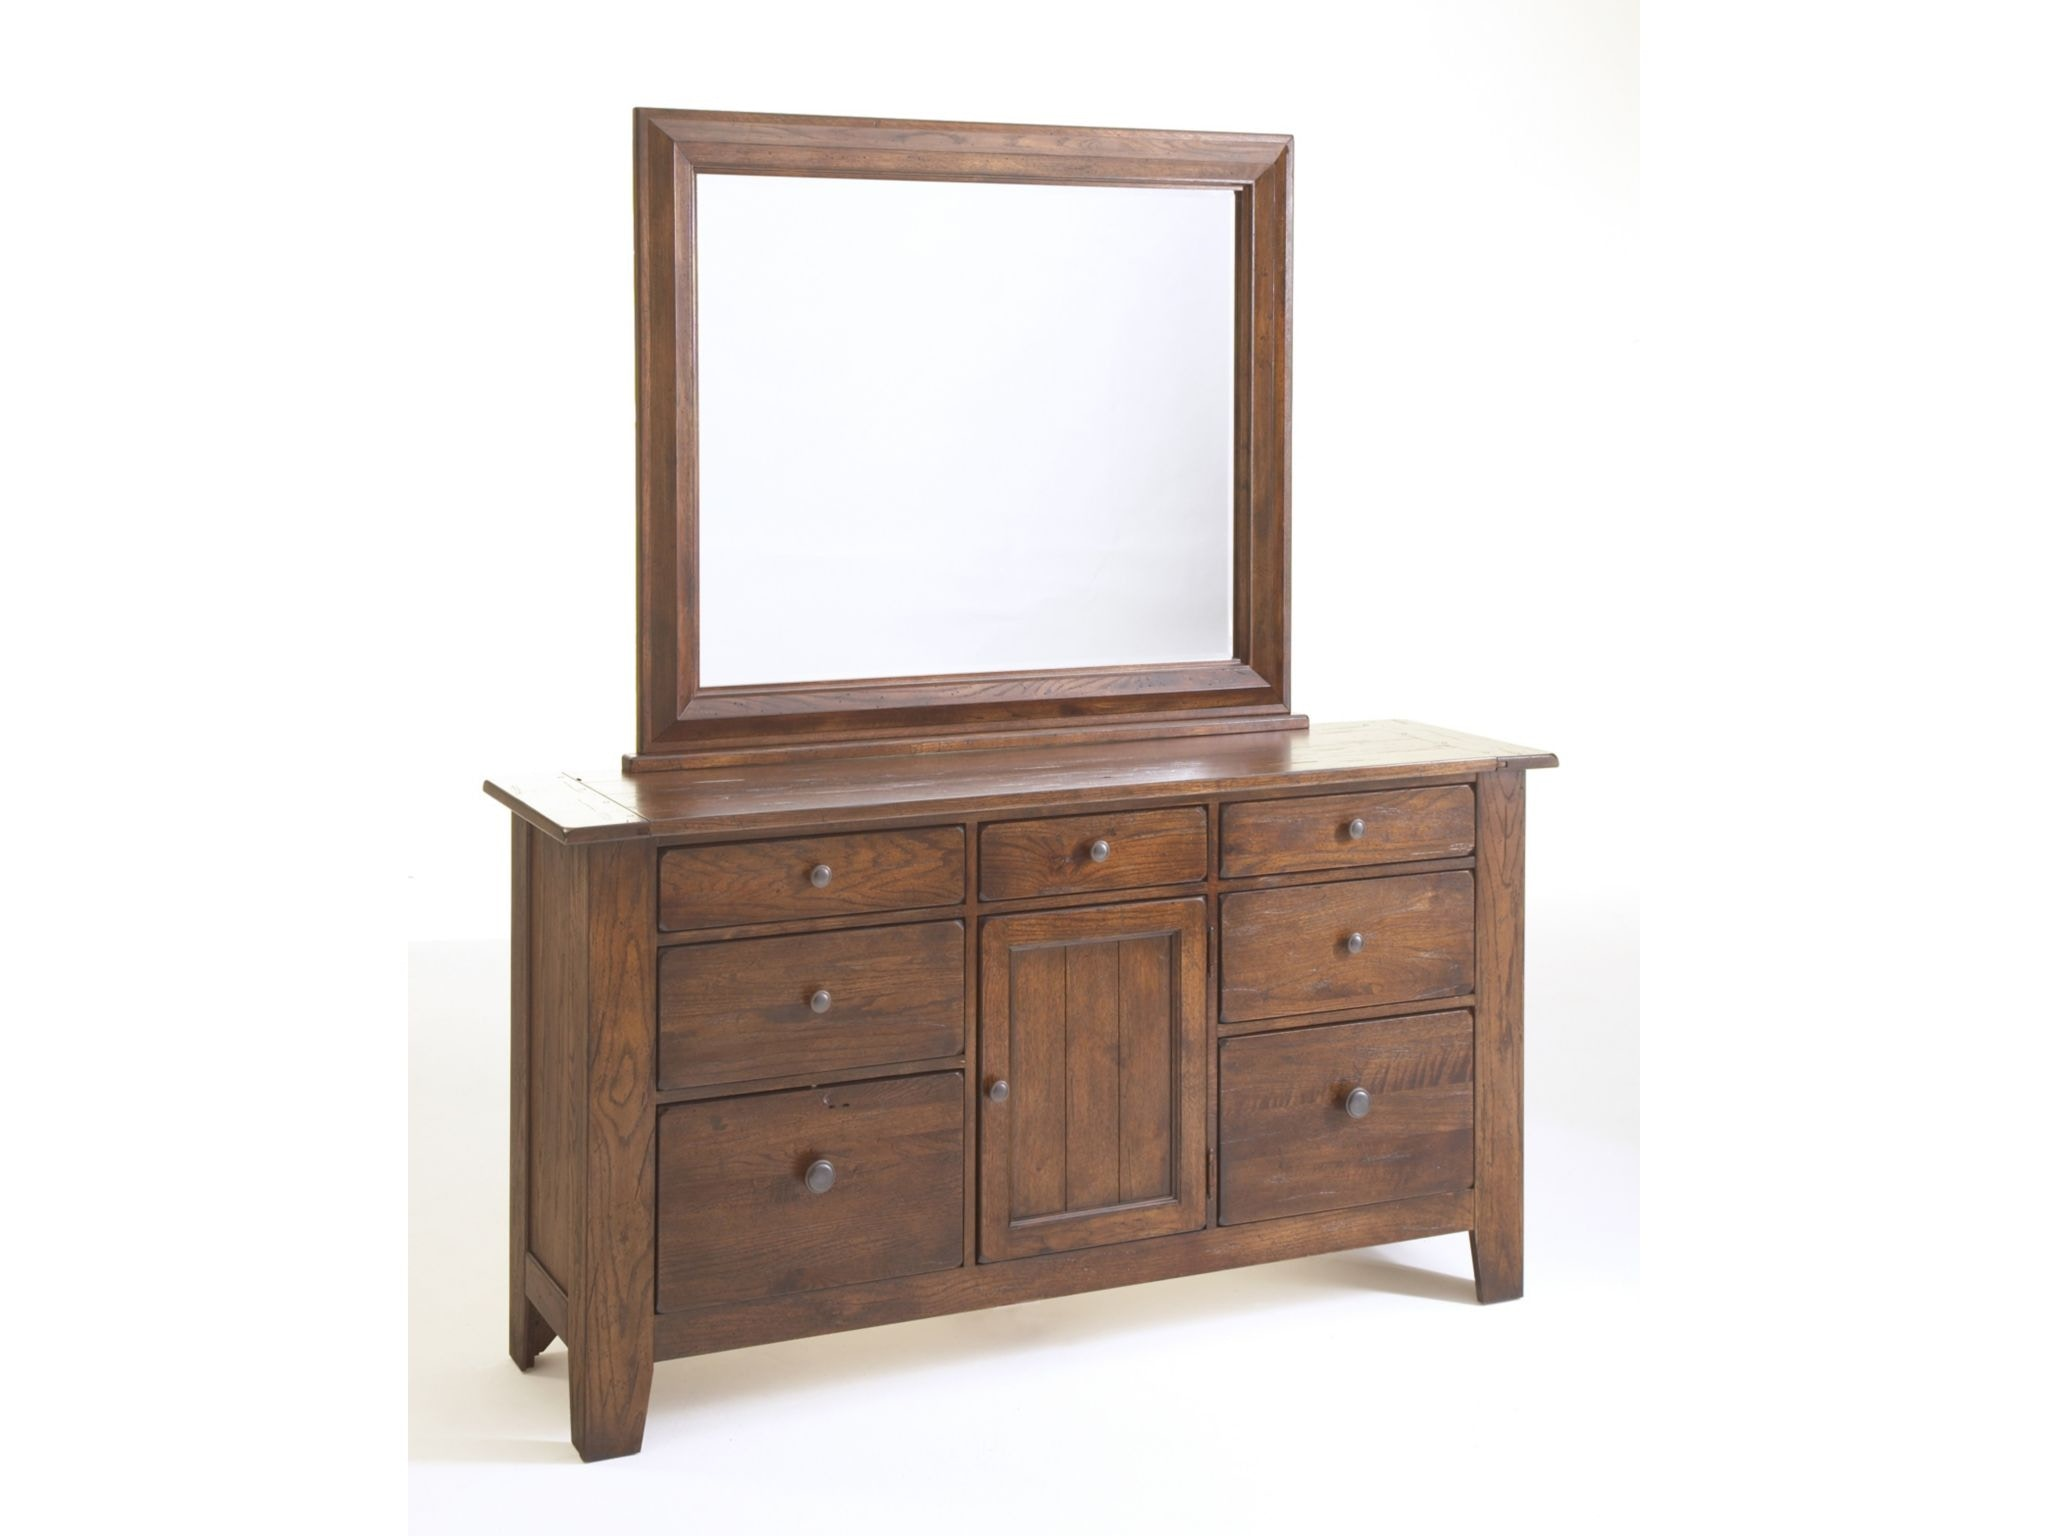 Broyhill Attic Heirlooms Door Dresser Natural Oak Stain 4397 32svfabrics Finishes Pieces